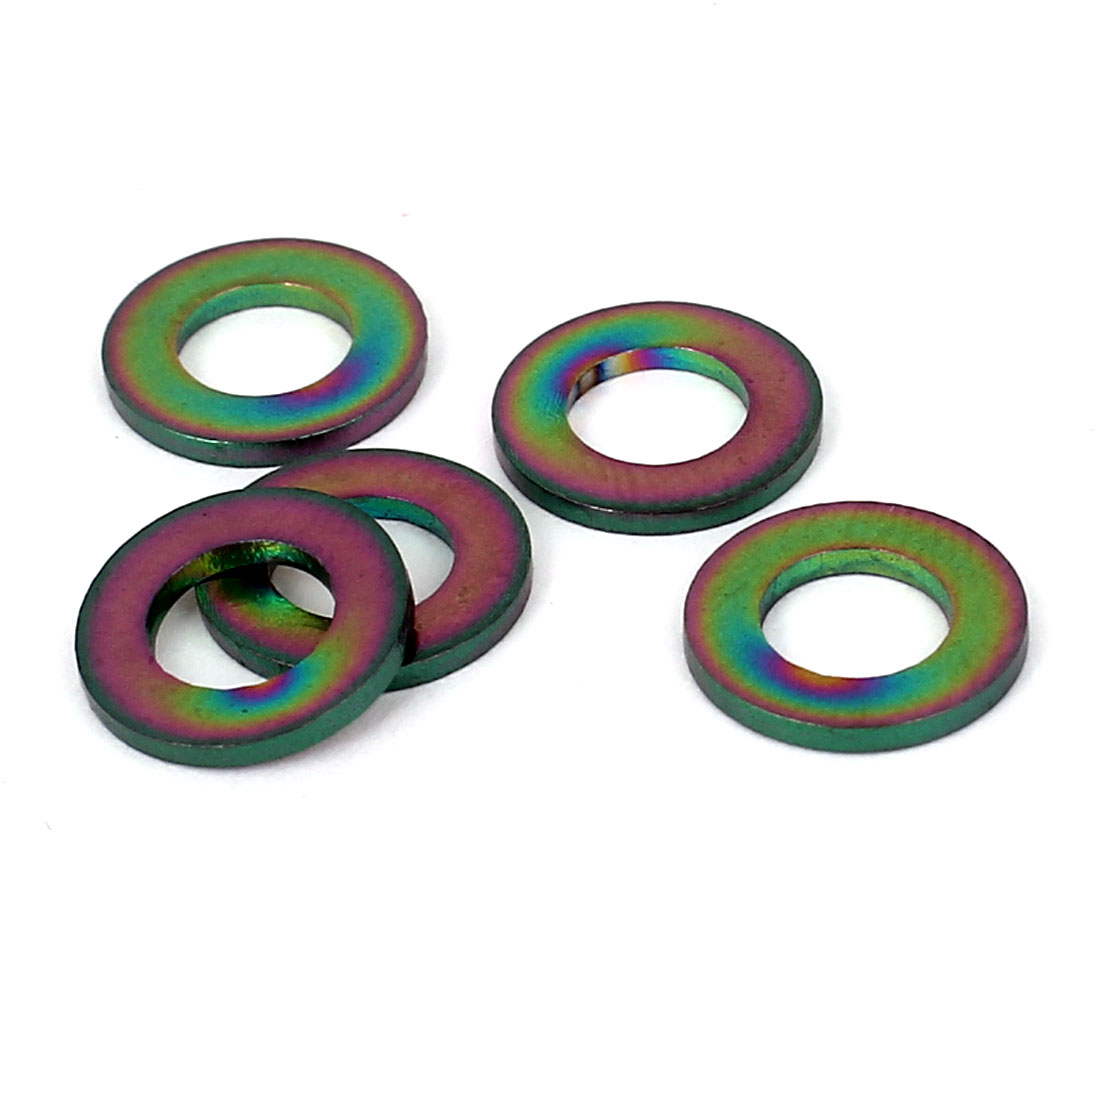 5pcs M5 Colorful Titanium Ti Metric Flat Washer DIN 125 for Bike Motorcycle Car